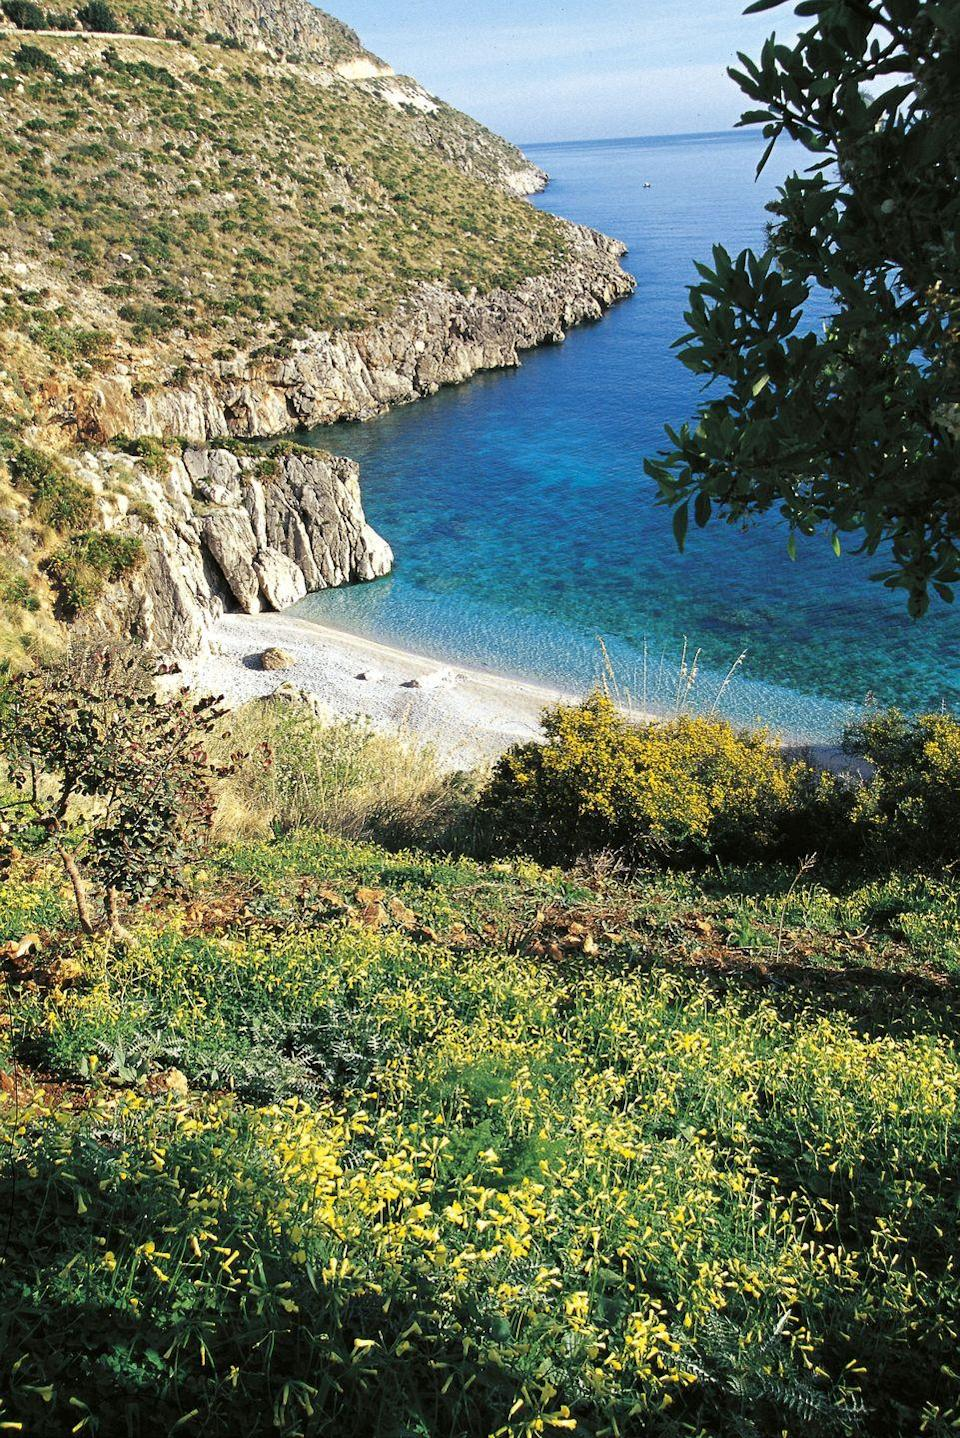 <p>The largest island in the Mediterranean Sea, Sicily has gorgeous beaches and mild weather. The island is packed with history, and contains many historical sites, museums, and churches. Oh, and the food is next-level.</p>